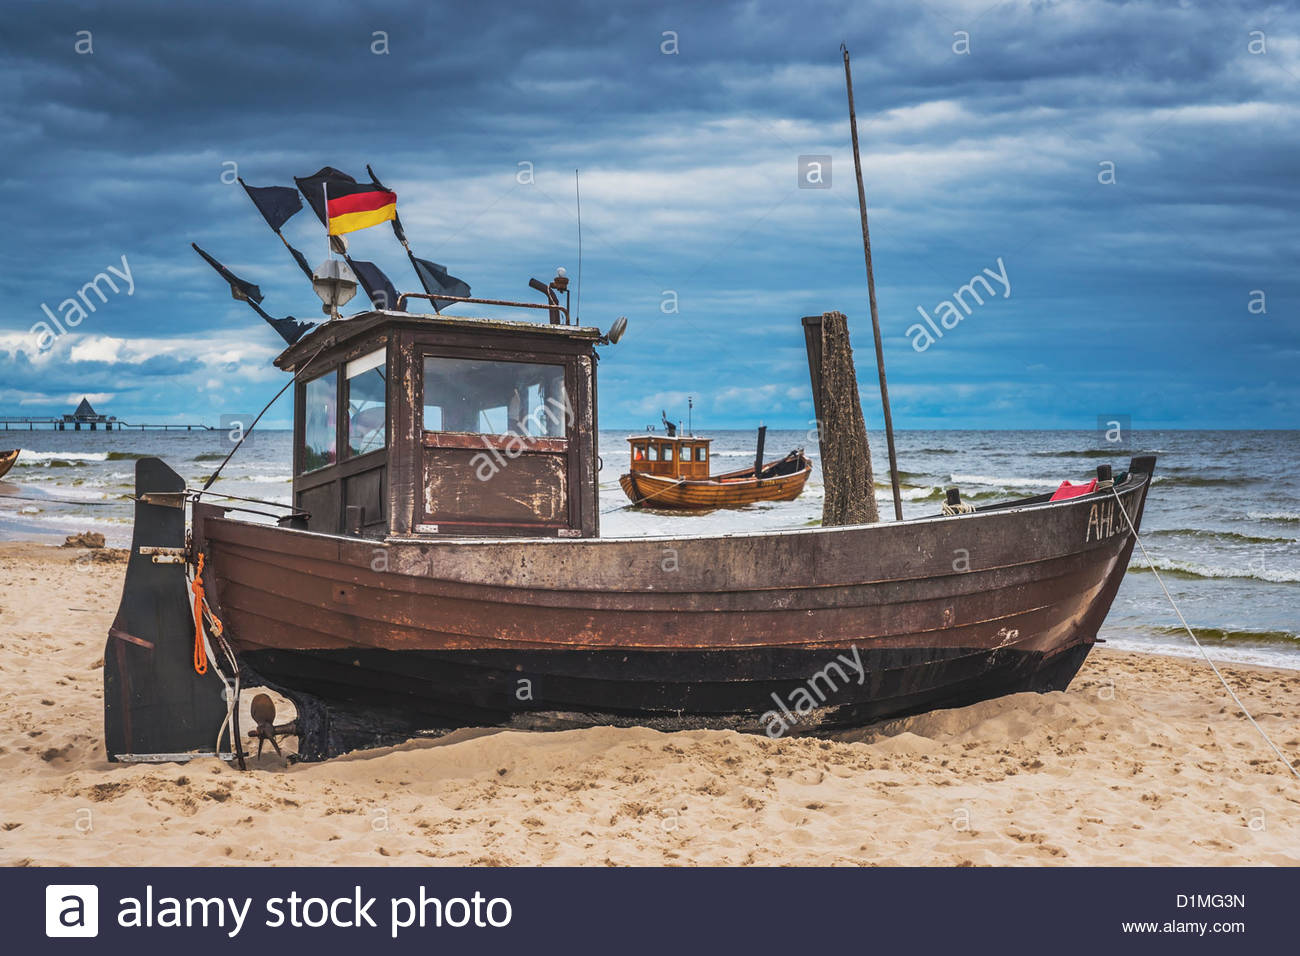 Two Fishing Boats At The Beach Of The Baltic Sea, Ahlbeck, Usedom.